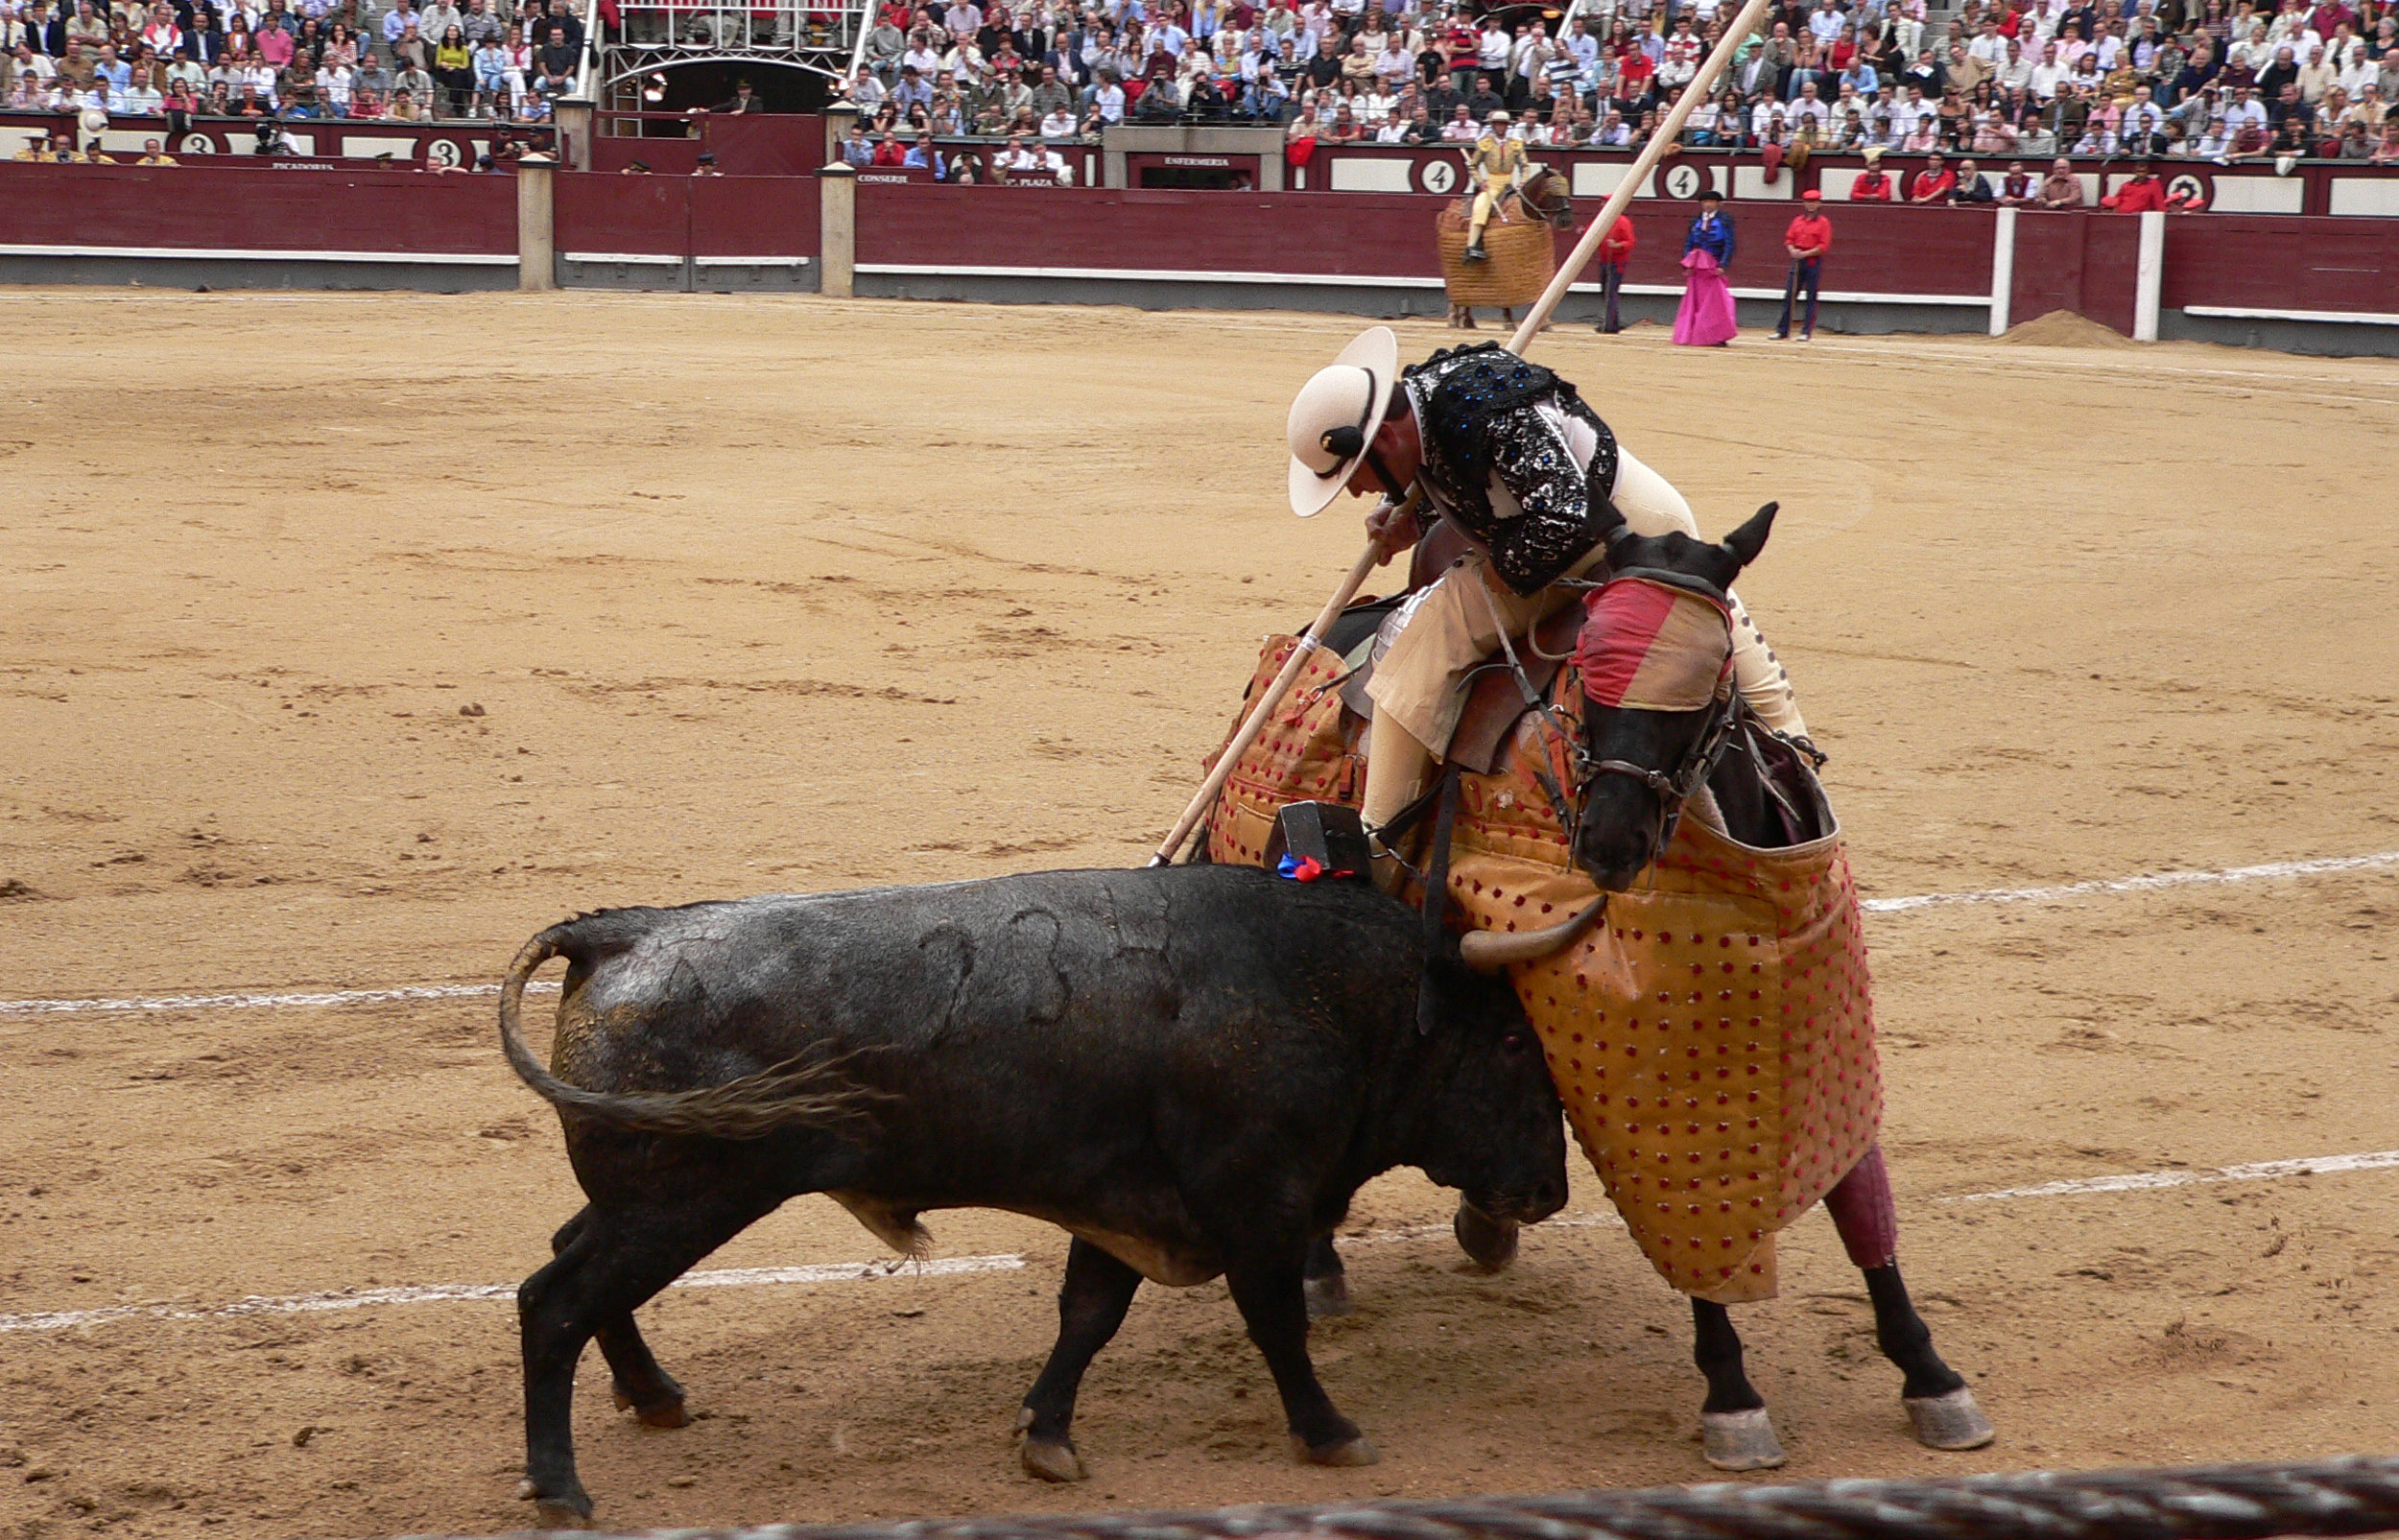 A picador equipped with a lance during a bullfight. | Credit:  Manuel González Olaechea